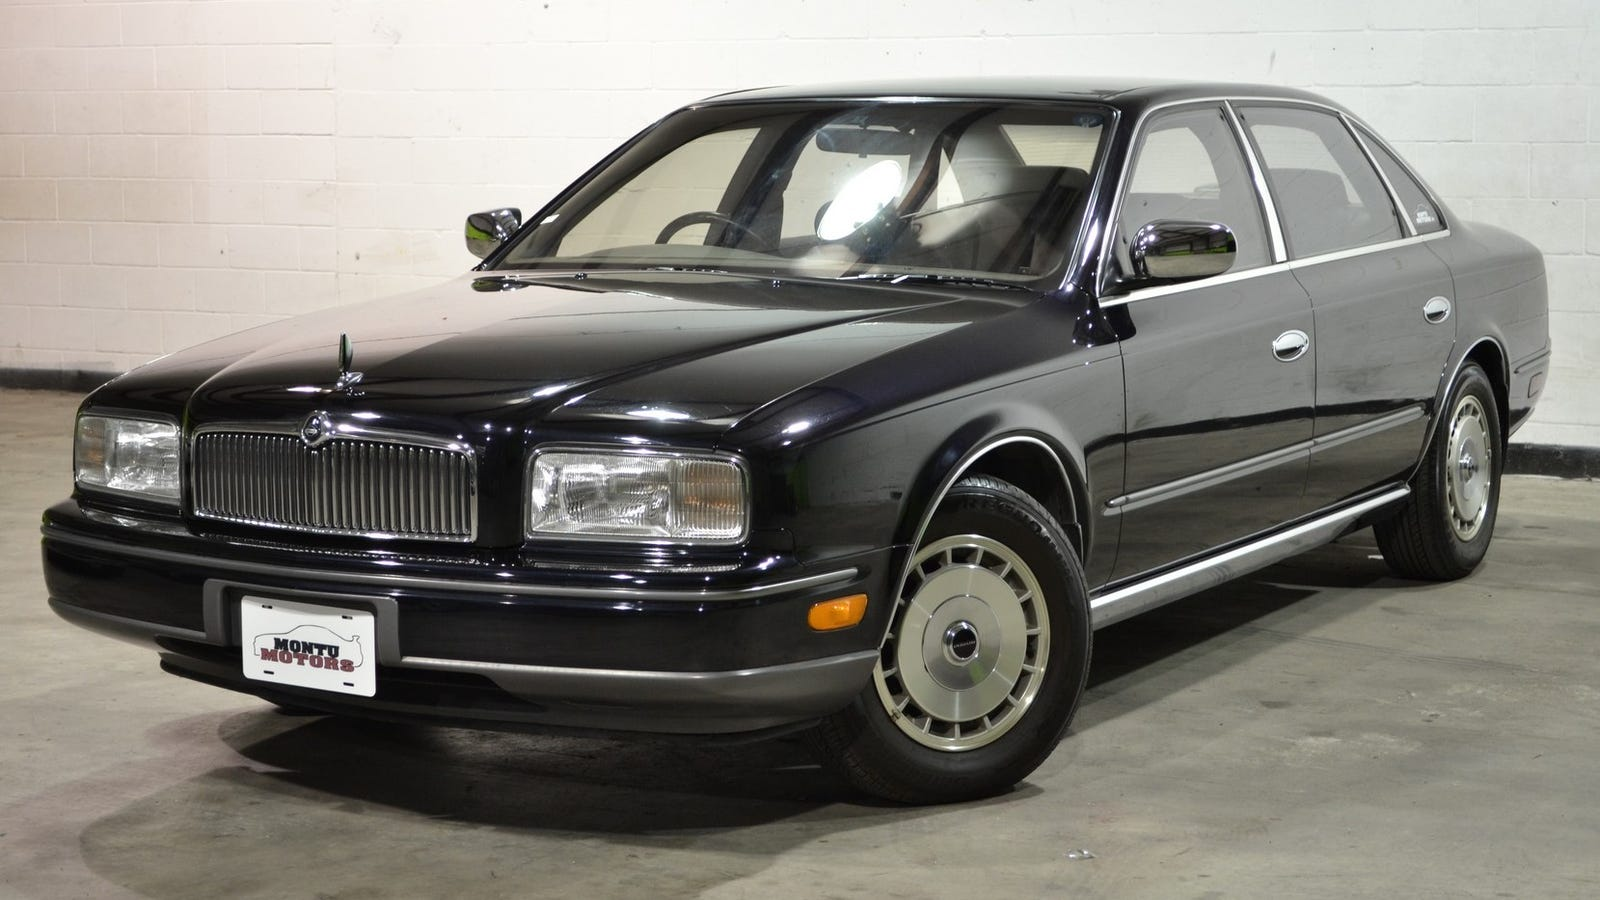 This obscenely luxurious 1990 nissan president sovereign will this obscenely luxurious 1990 nissan president sovereign will raise your status in life vanachro Choice Image